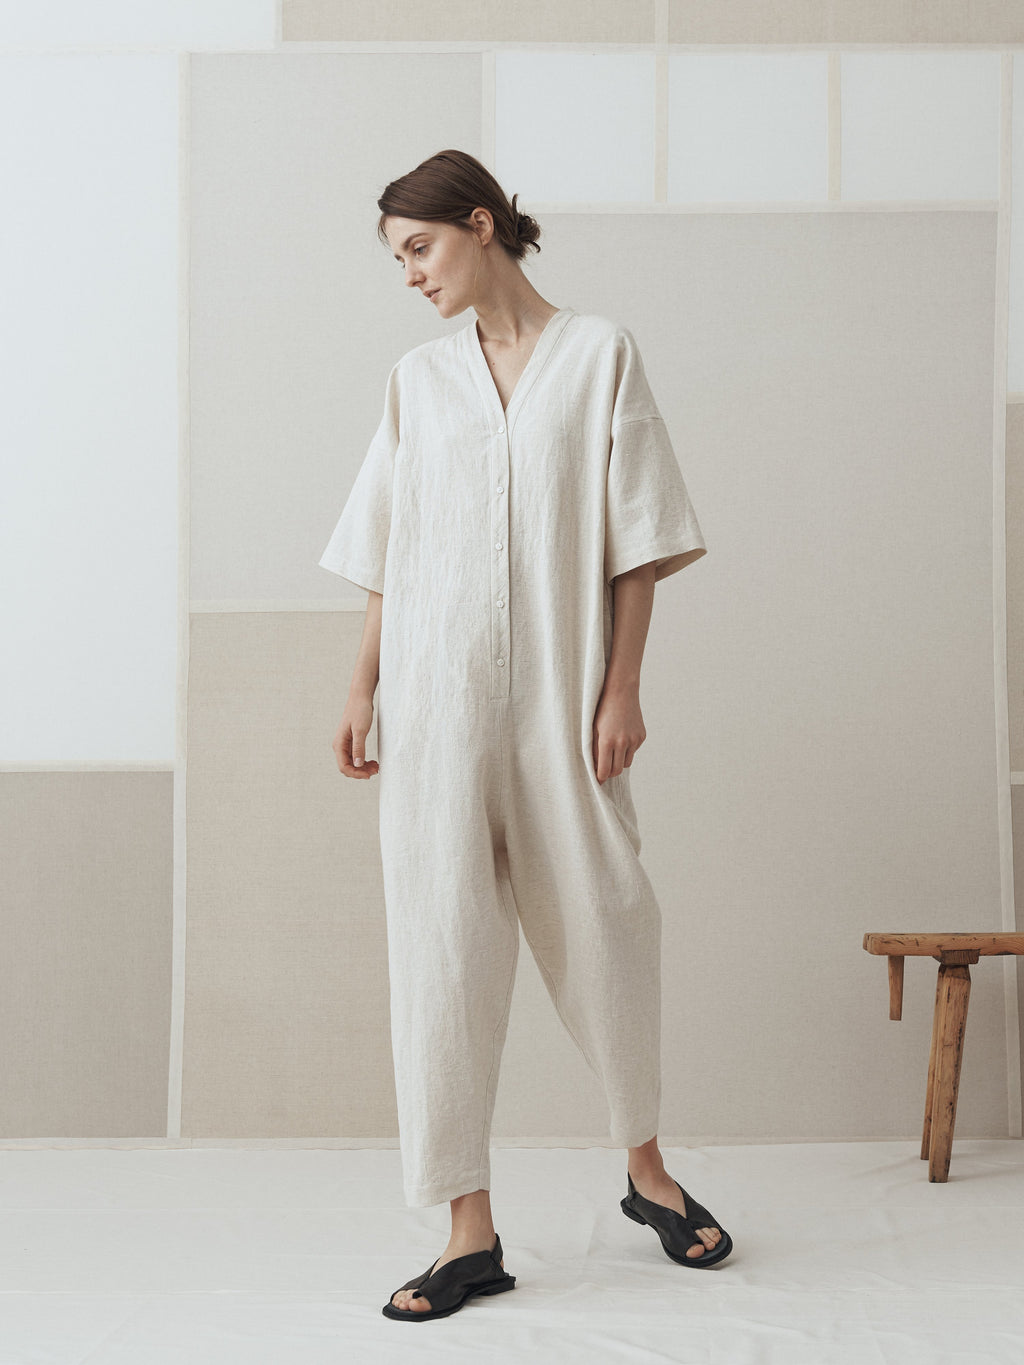 Namu Shop - muku Li / Co Jumpsuit in Beige